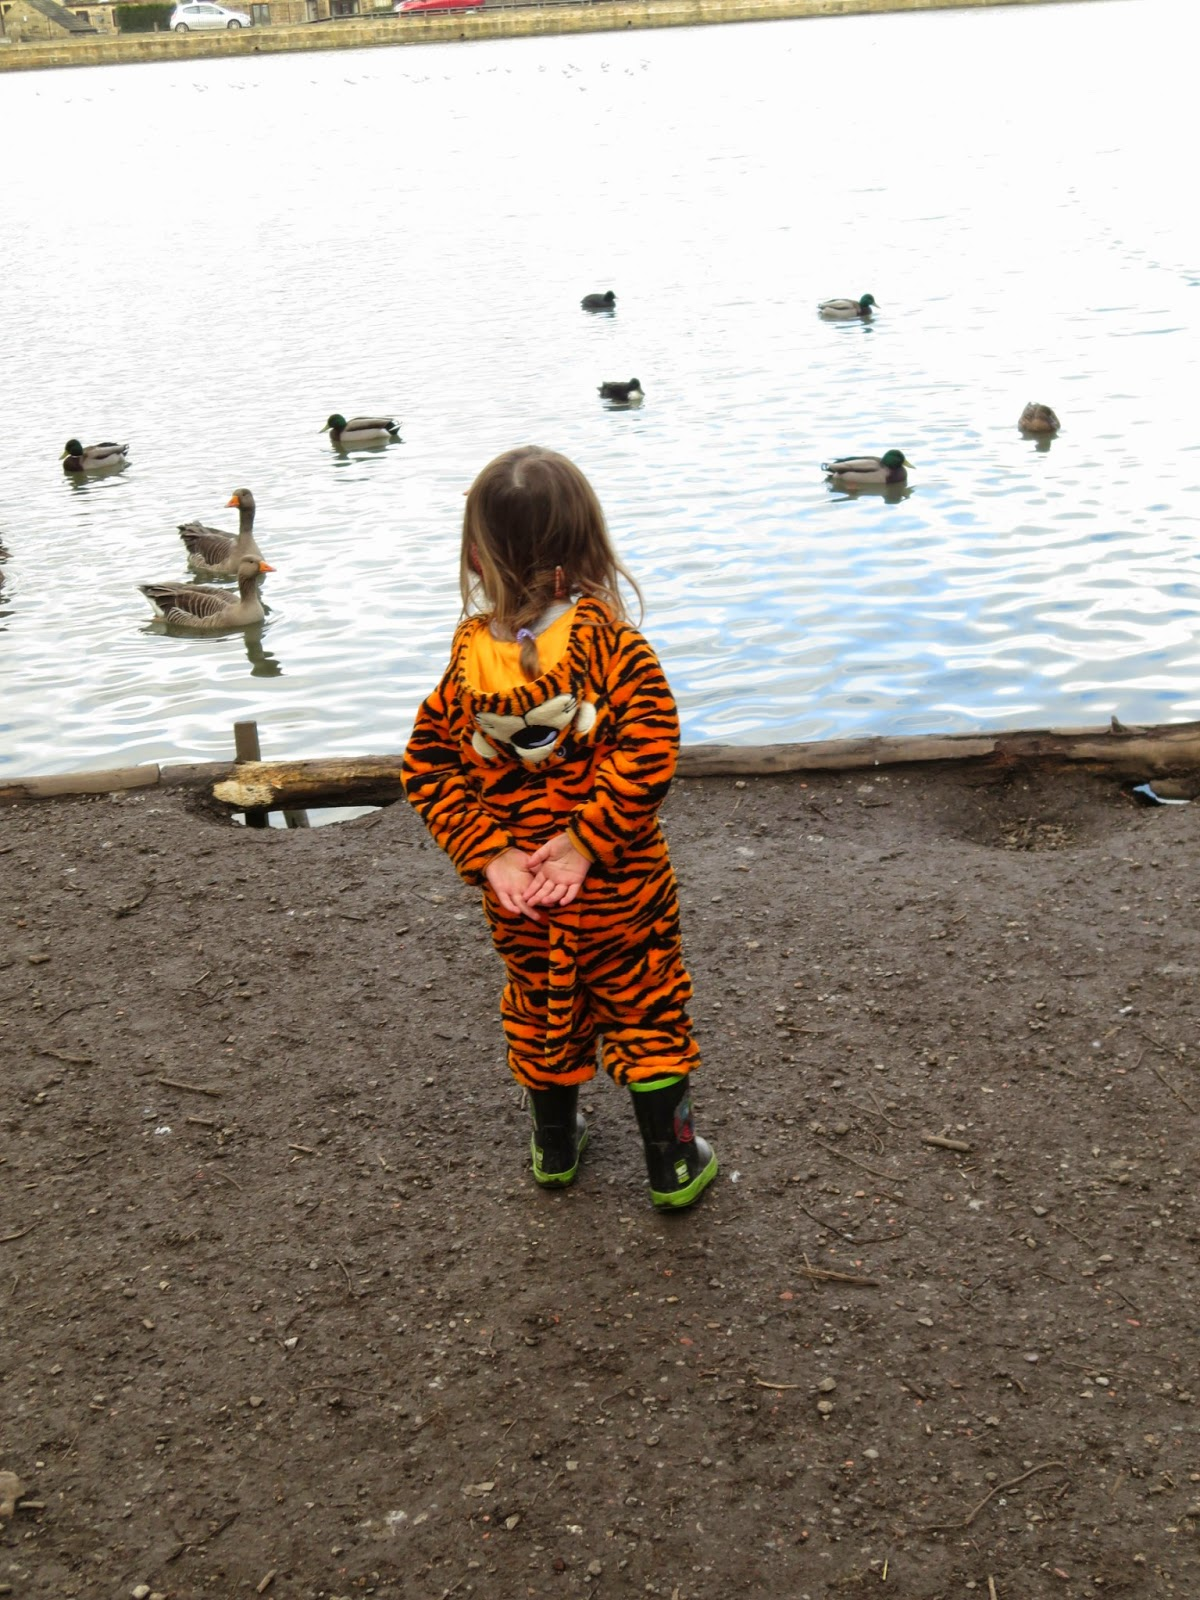 Tiger and the ducks